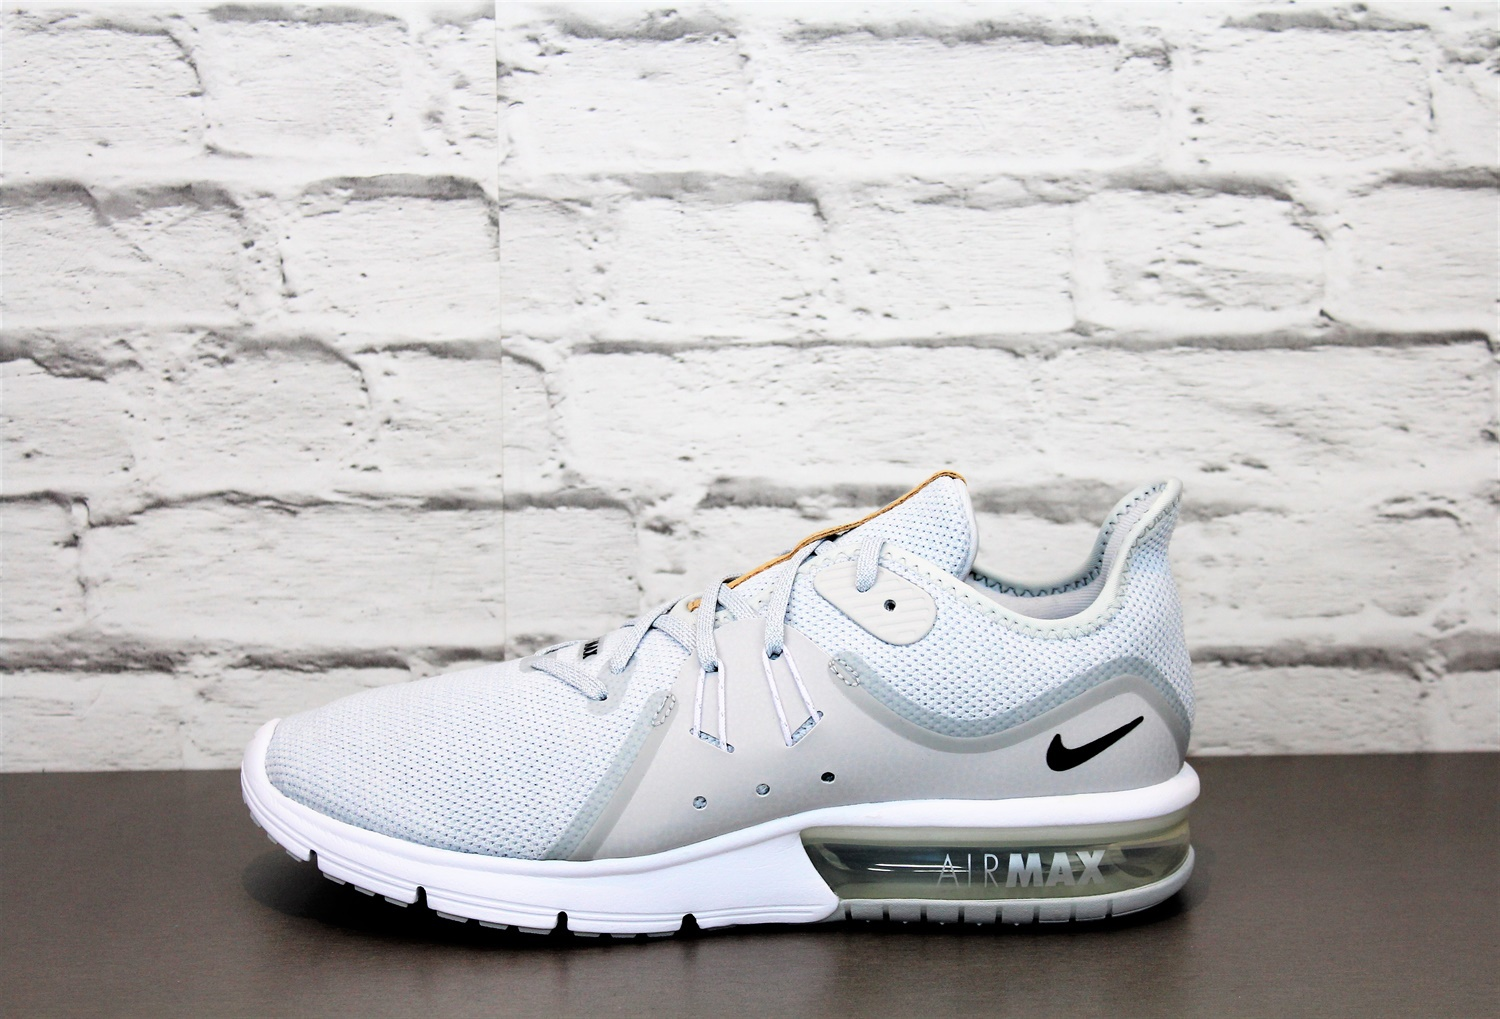 wholesale dealer d2b9a 40261 NIKE AIR MAX SEQUENT 3 921694 008. Colore  grigio